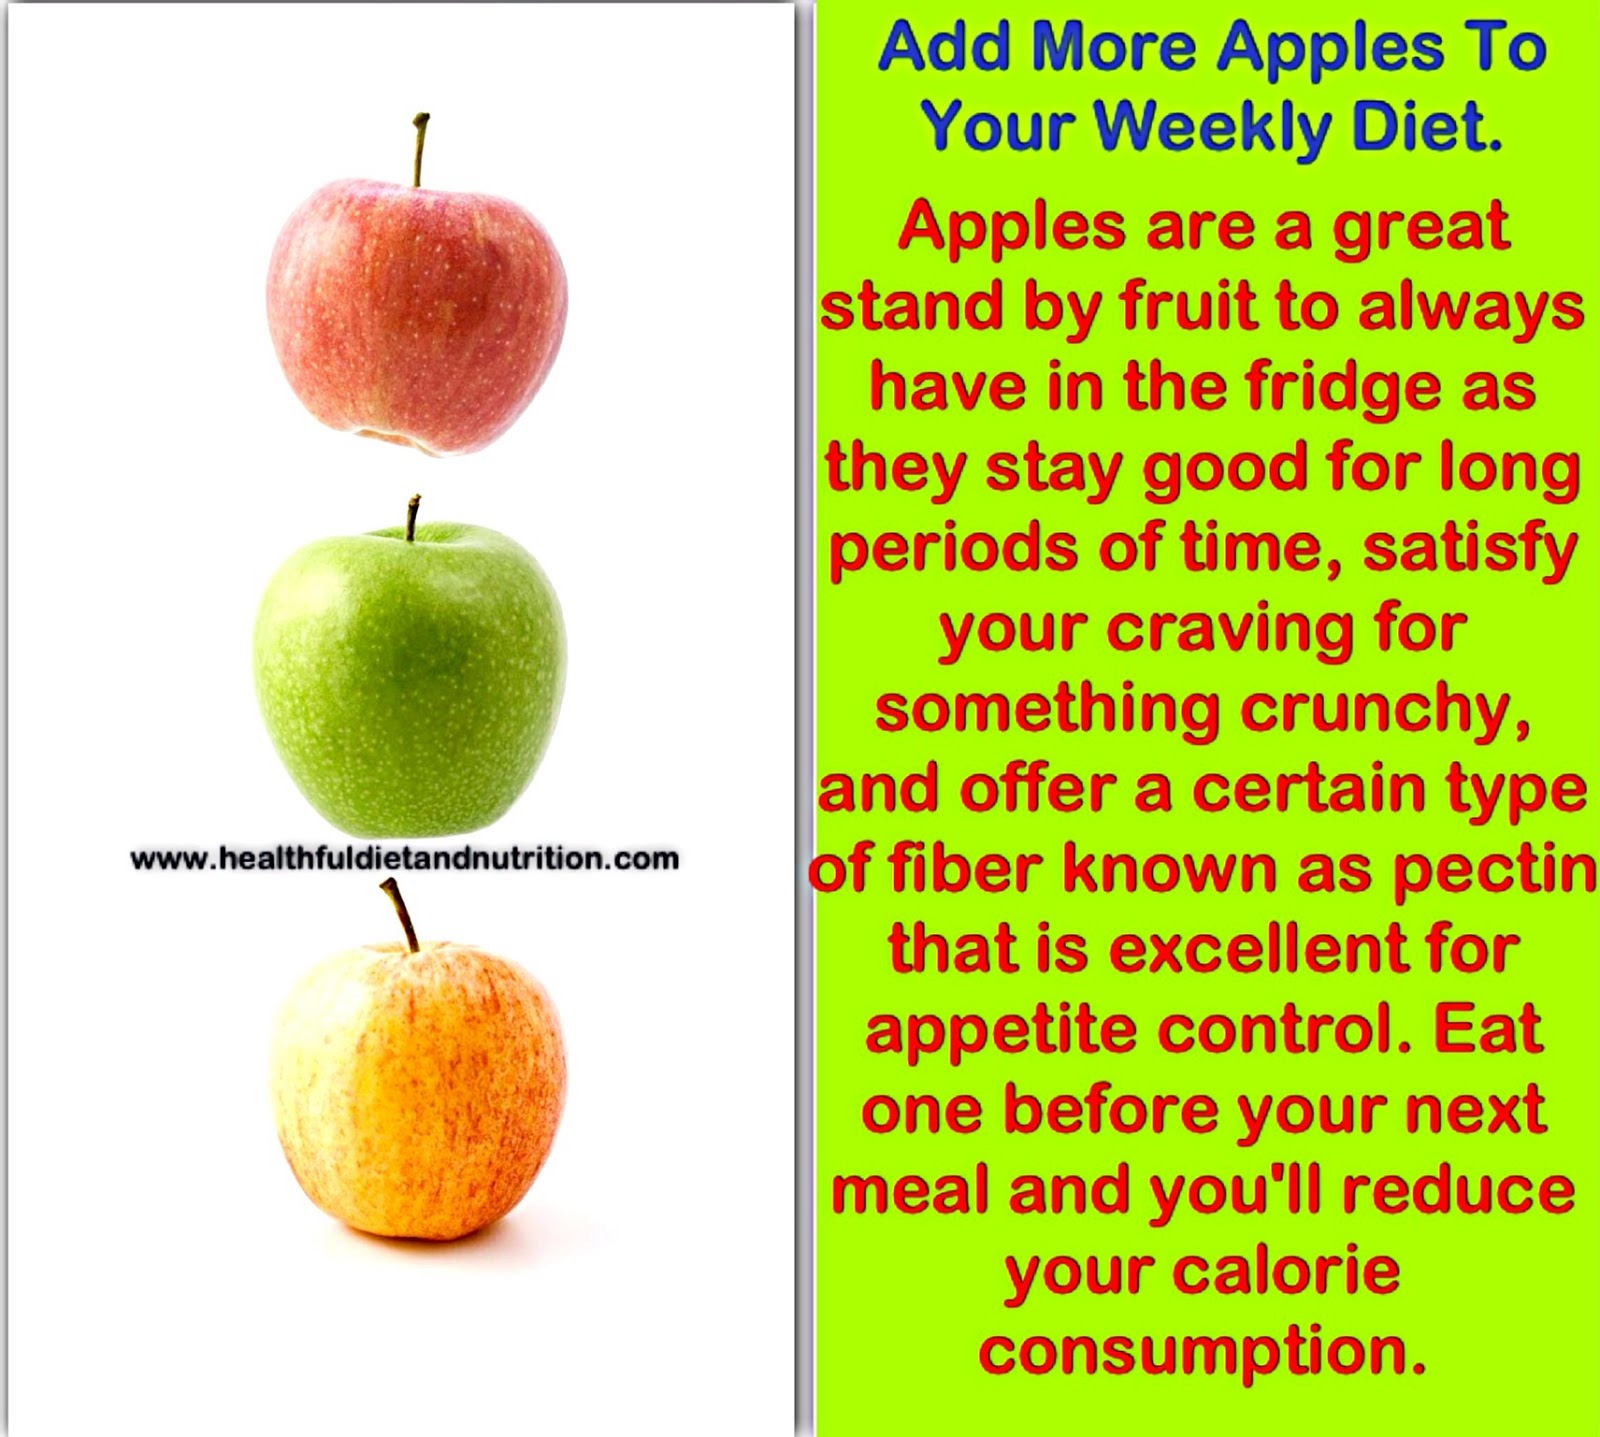 Add More Apples To Your Weekly Diet